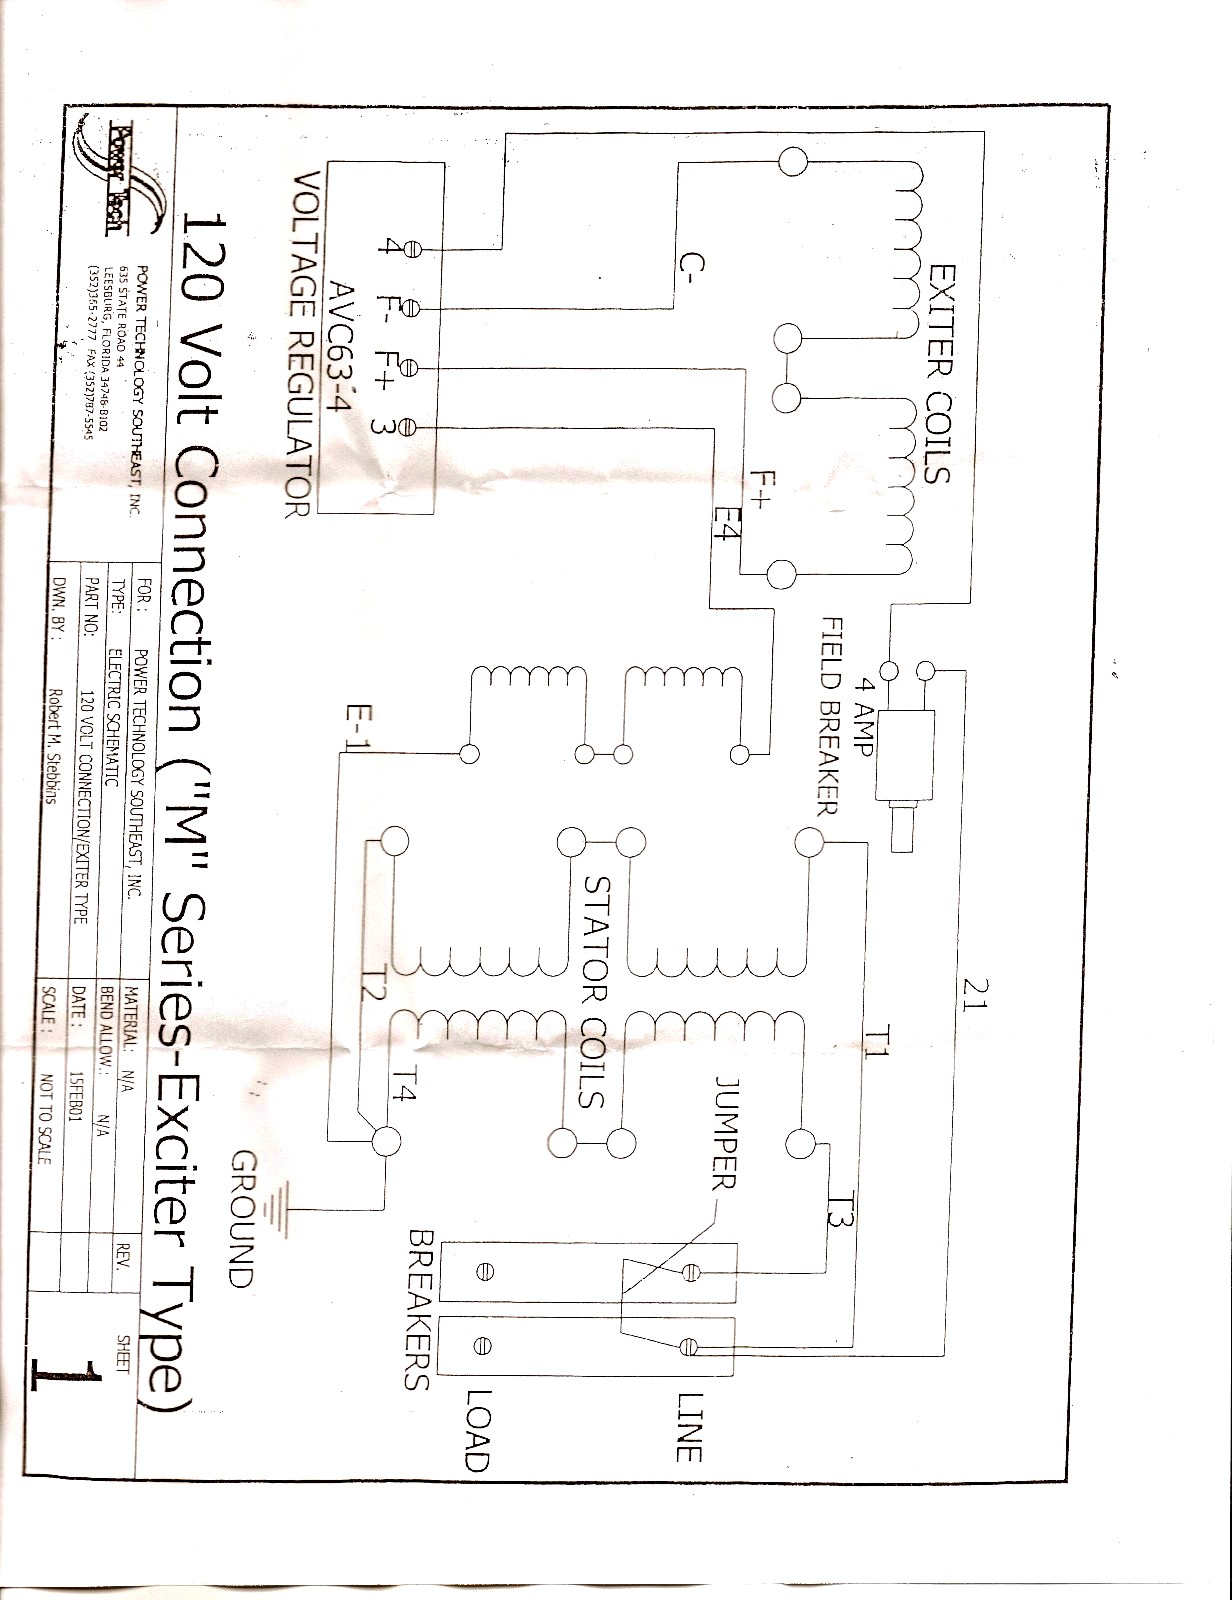 120V VOLTAGE REGULATOR DIAGRAM powertech generators files & factory information wanderlodge woodward solenoid 1751es wiring diagram at soozxer.org